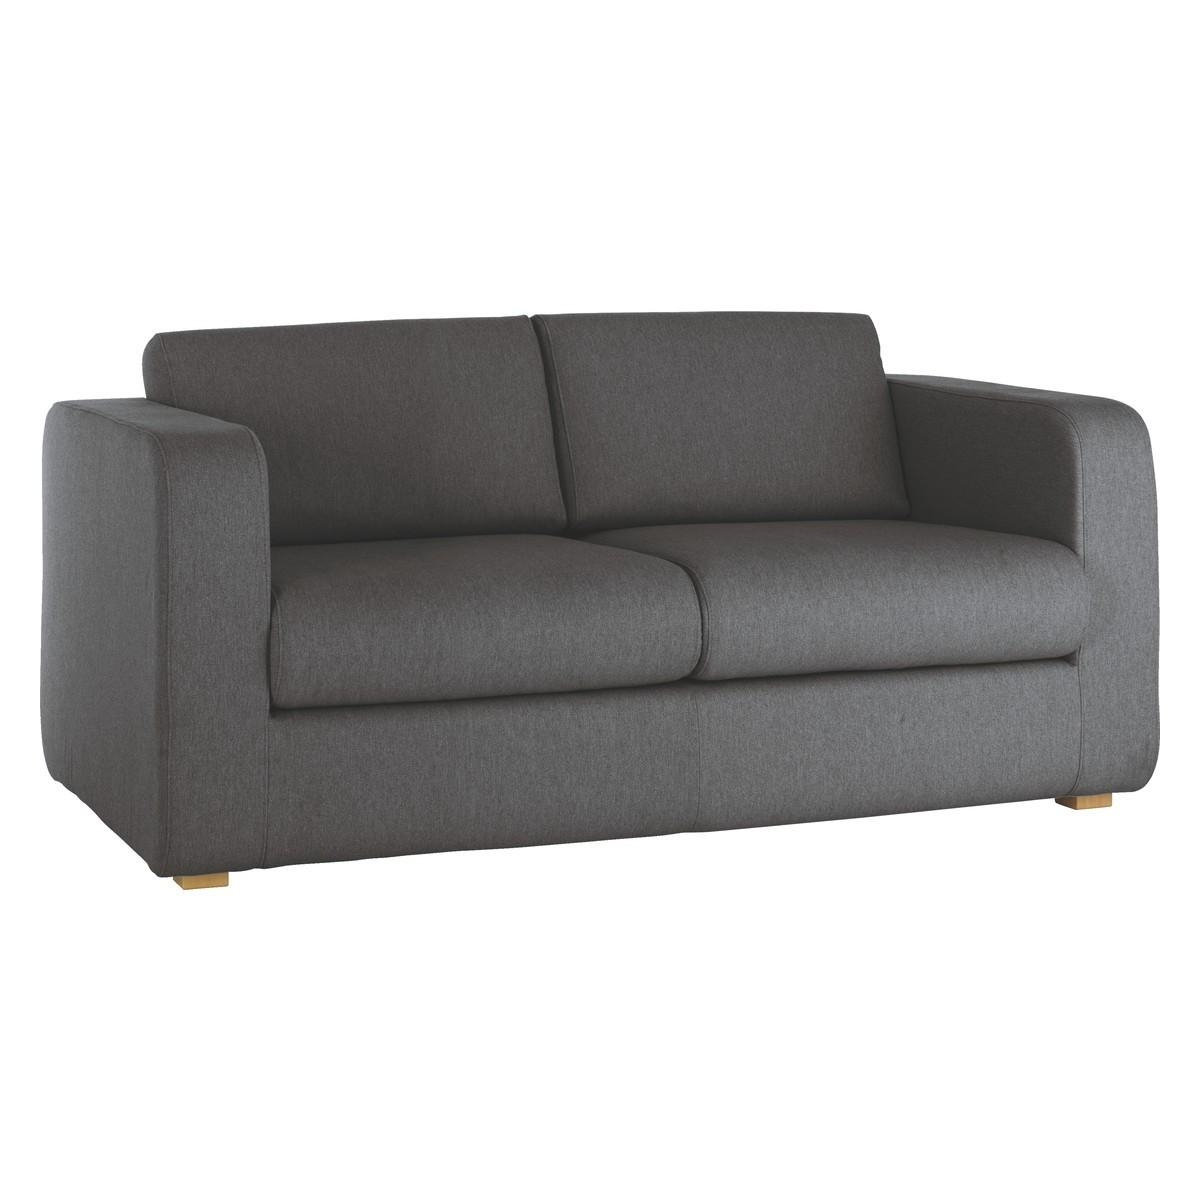 Sofas Center : Ritchier Sofa In Pearl Grey Made Com With Regard To Small Grey Sofas (Image 17 of 20)